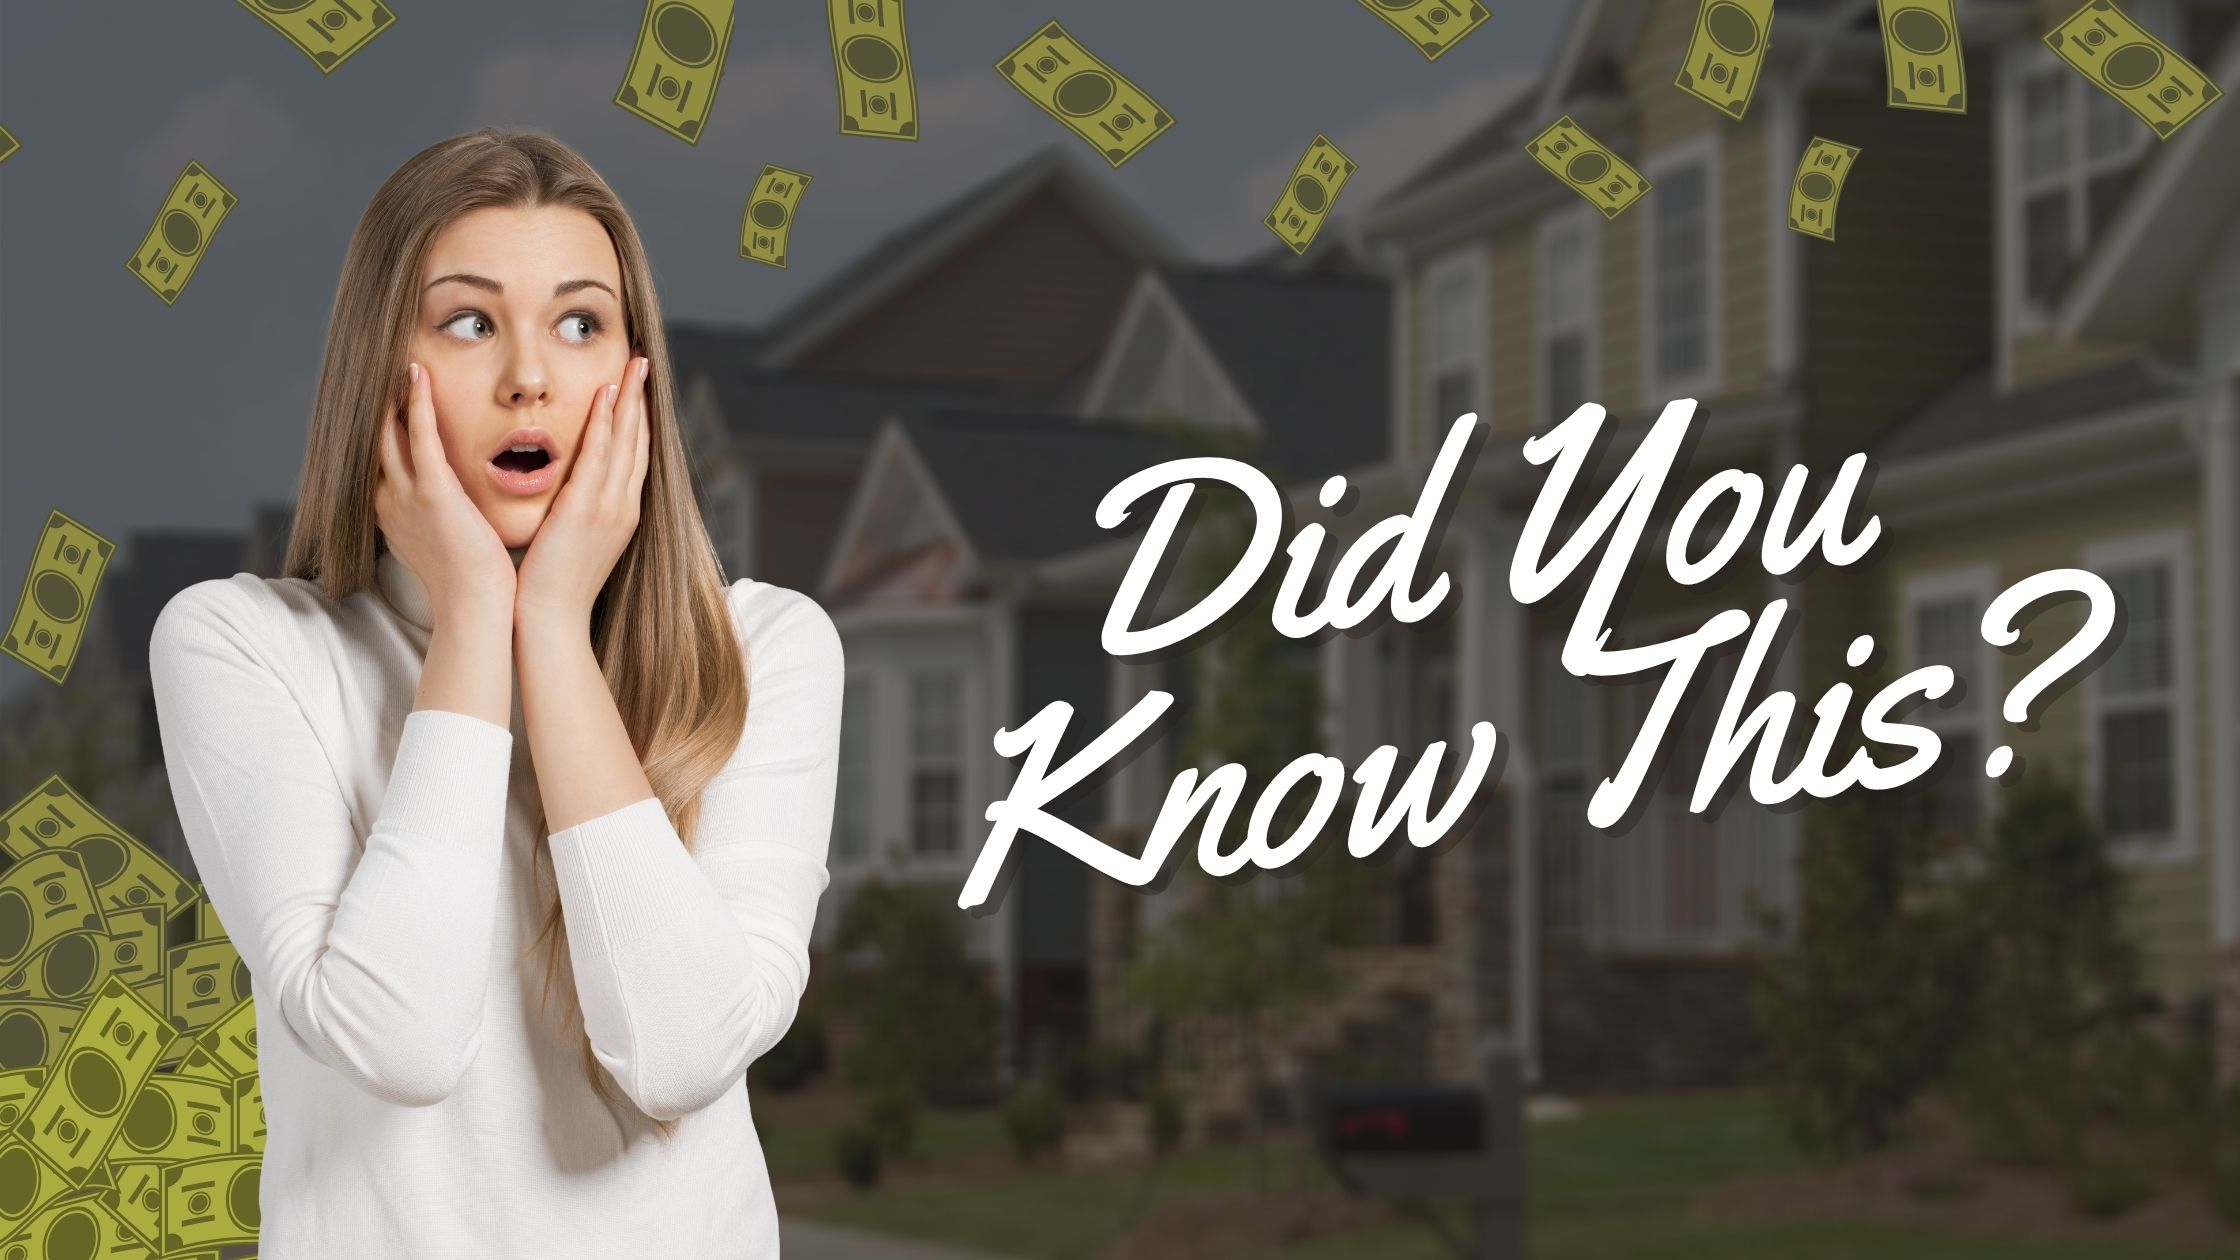 The Secret About Your Home Equity That Nobody Has Told You